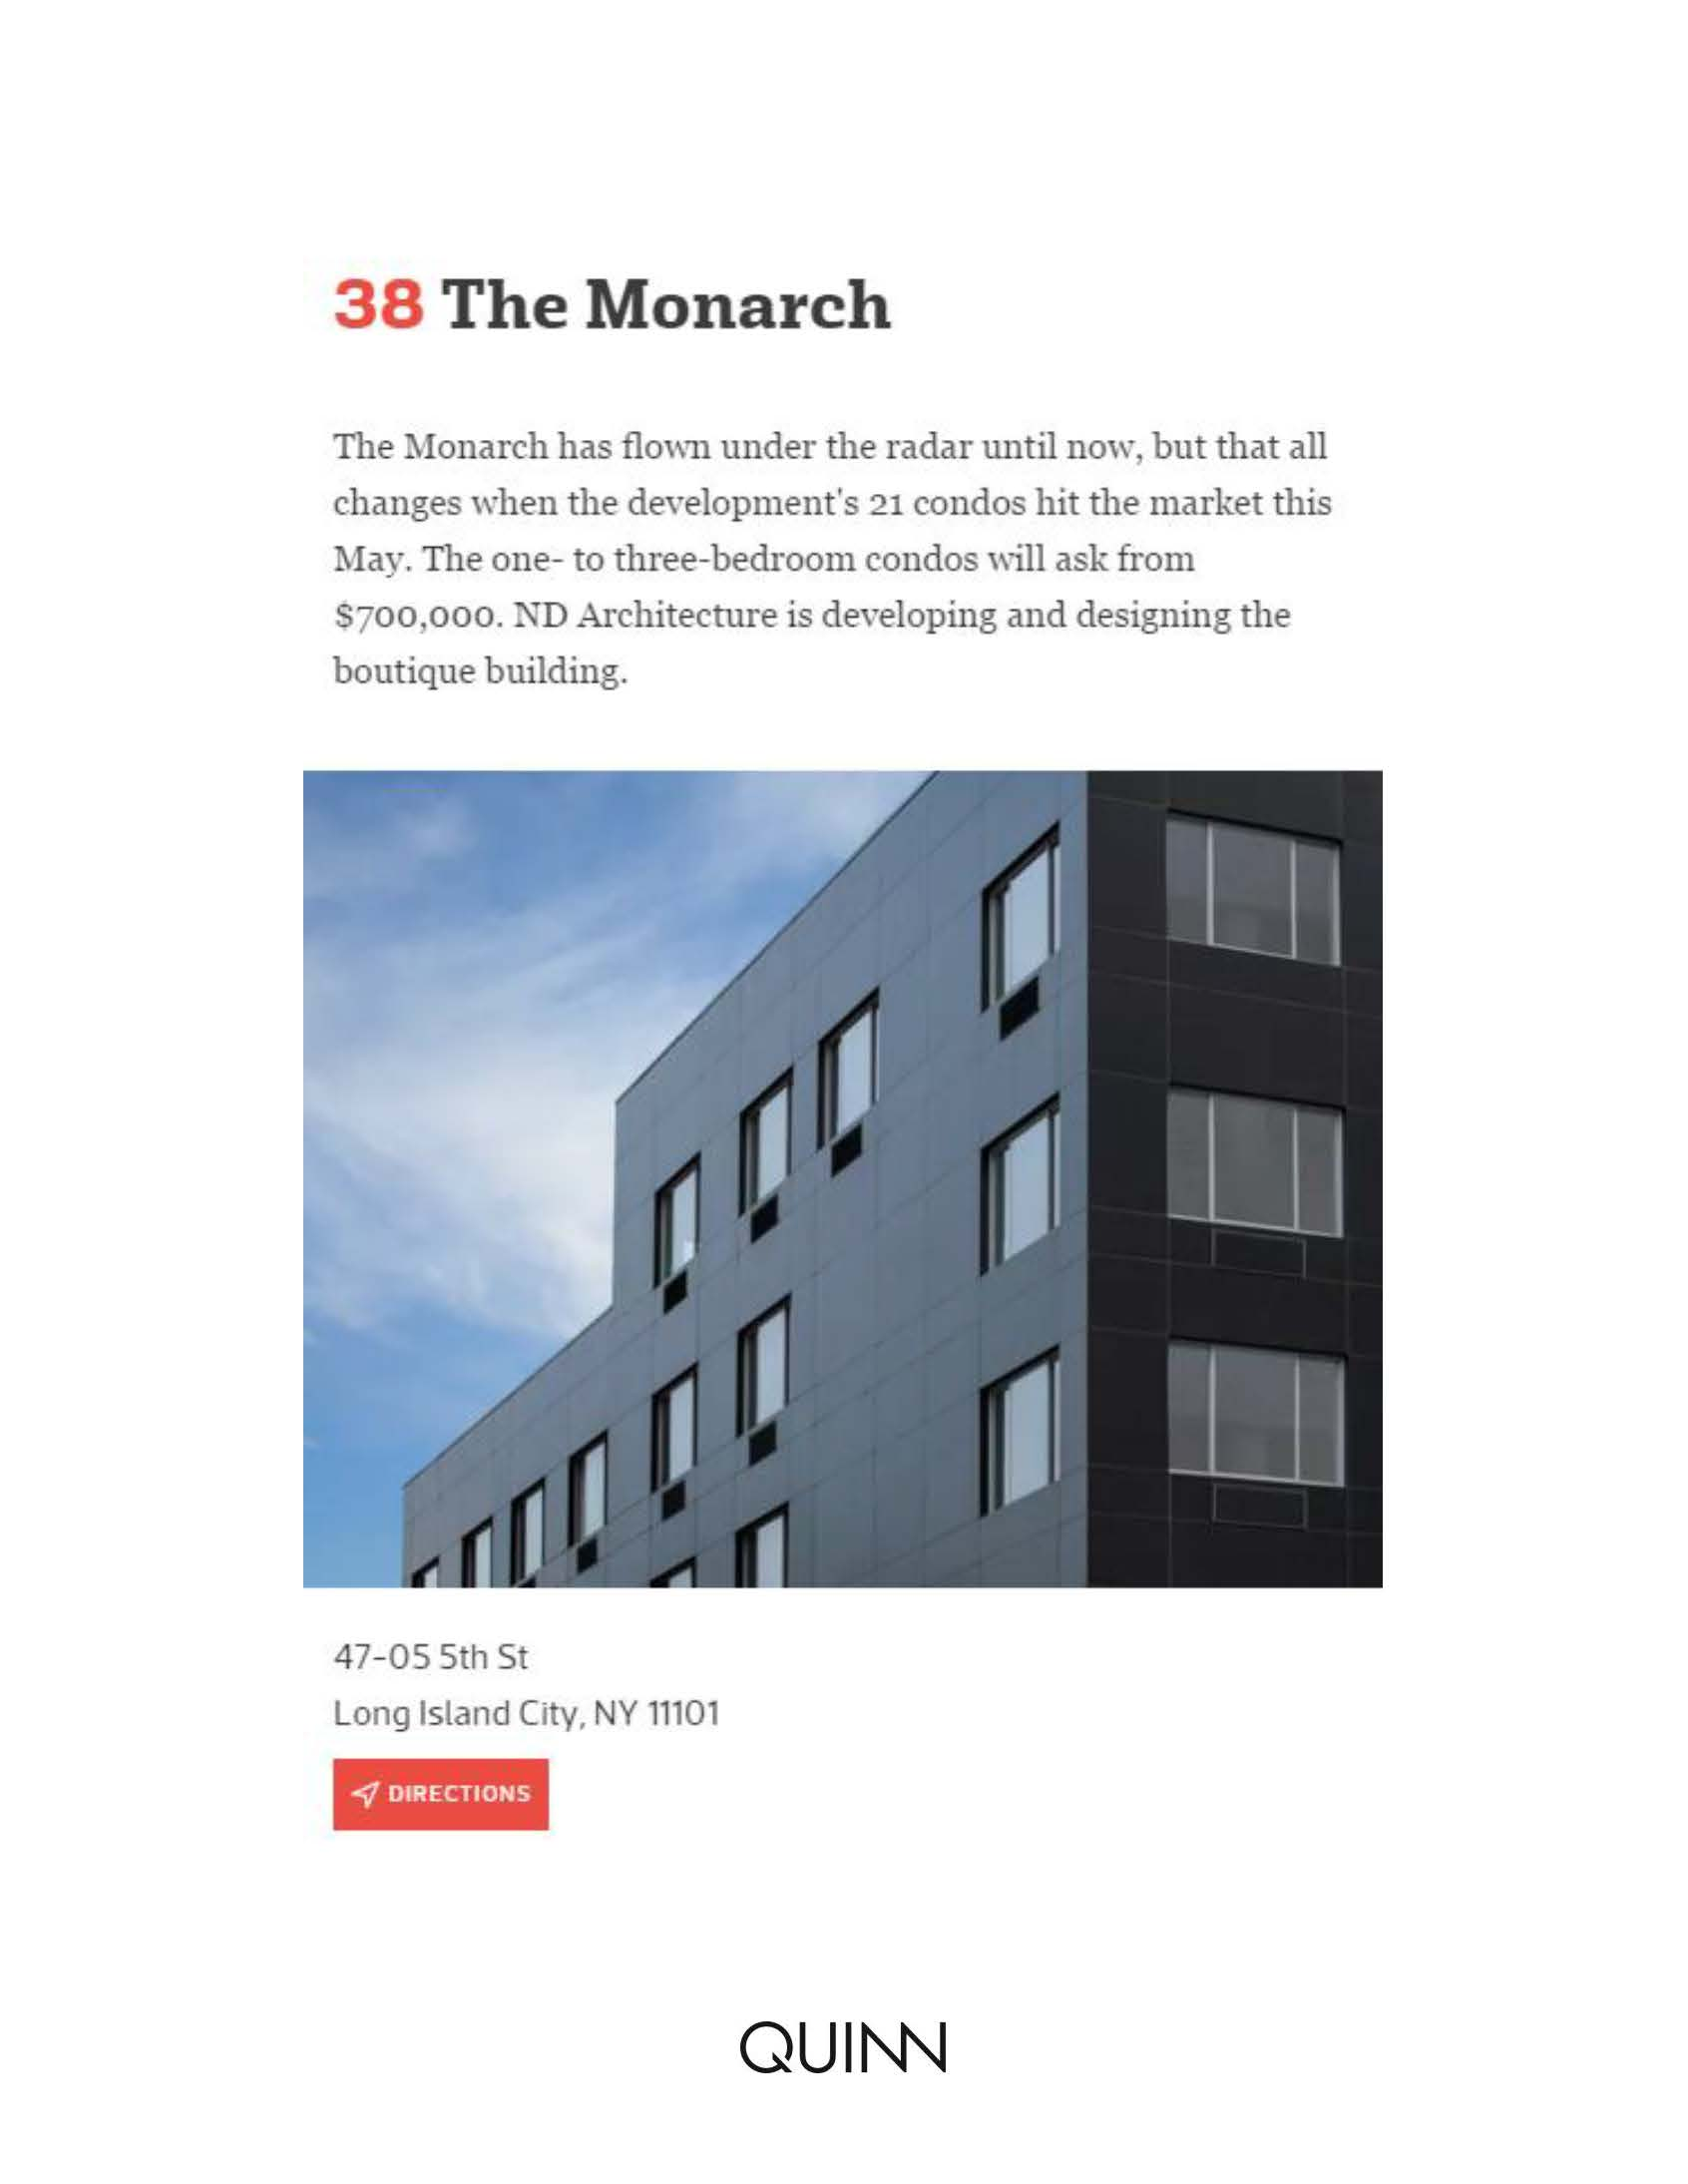 Curbed NY - New NYC Apartments Hitting the Market Spring 2016 - 03.23.16 (1)_Page_4